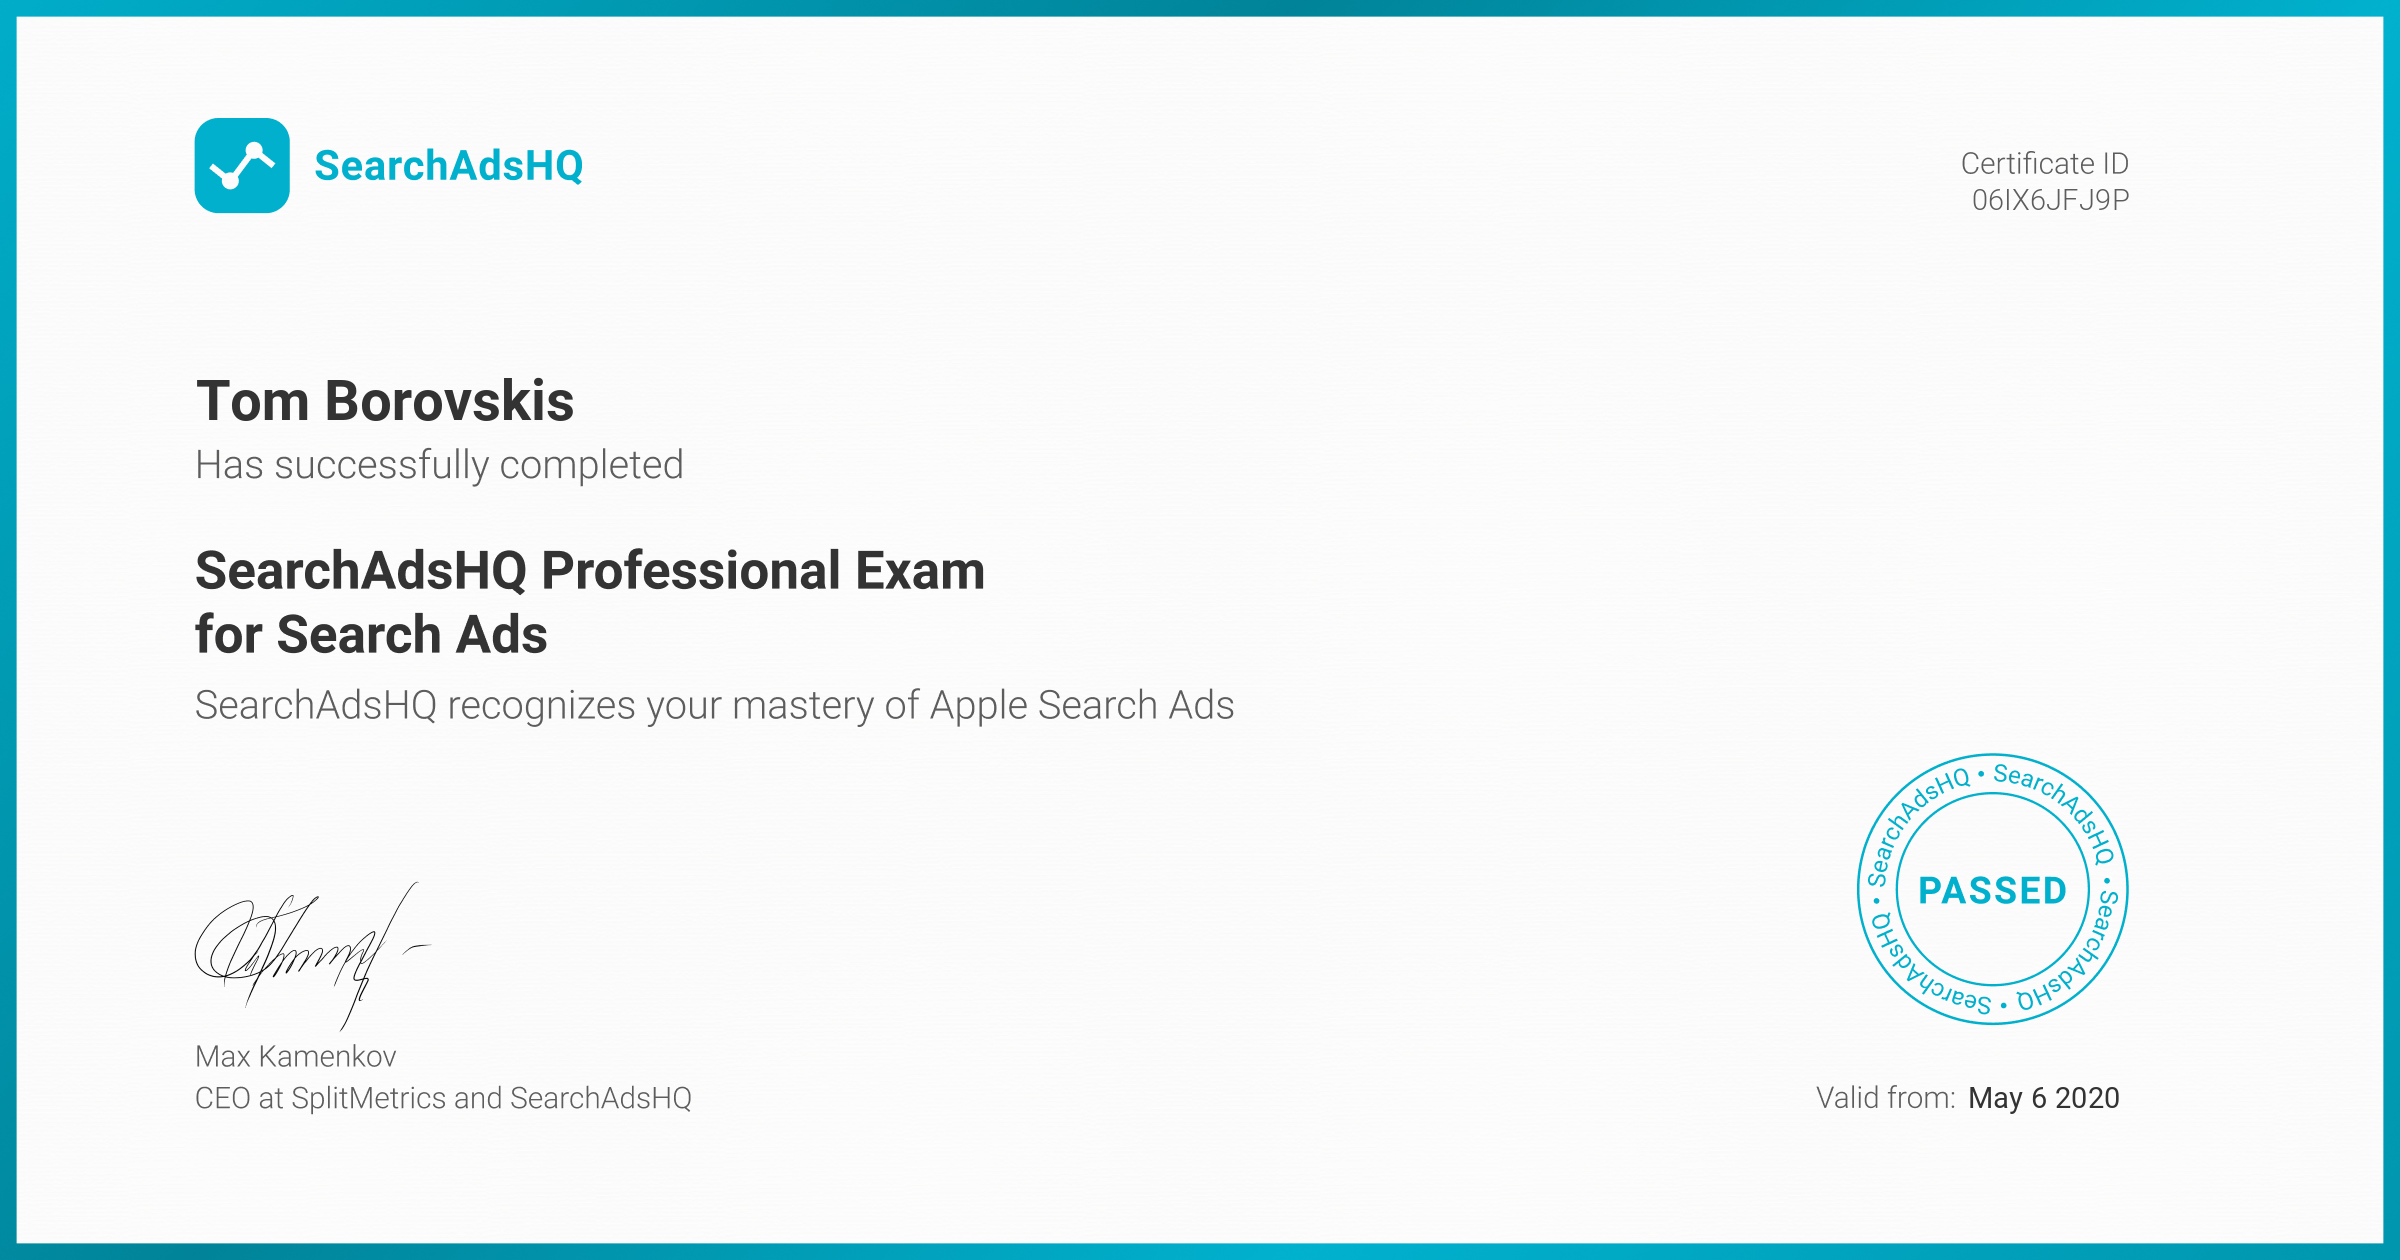 Certificate for Tom Borovskis | SearchAdsHQ Professional Exam for Search Ads